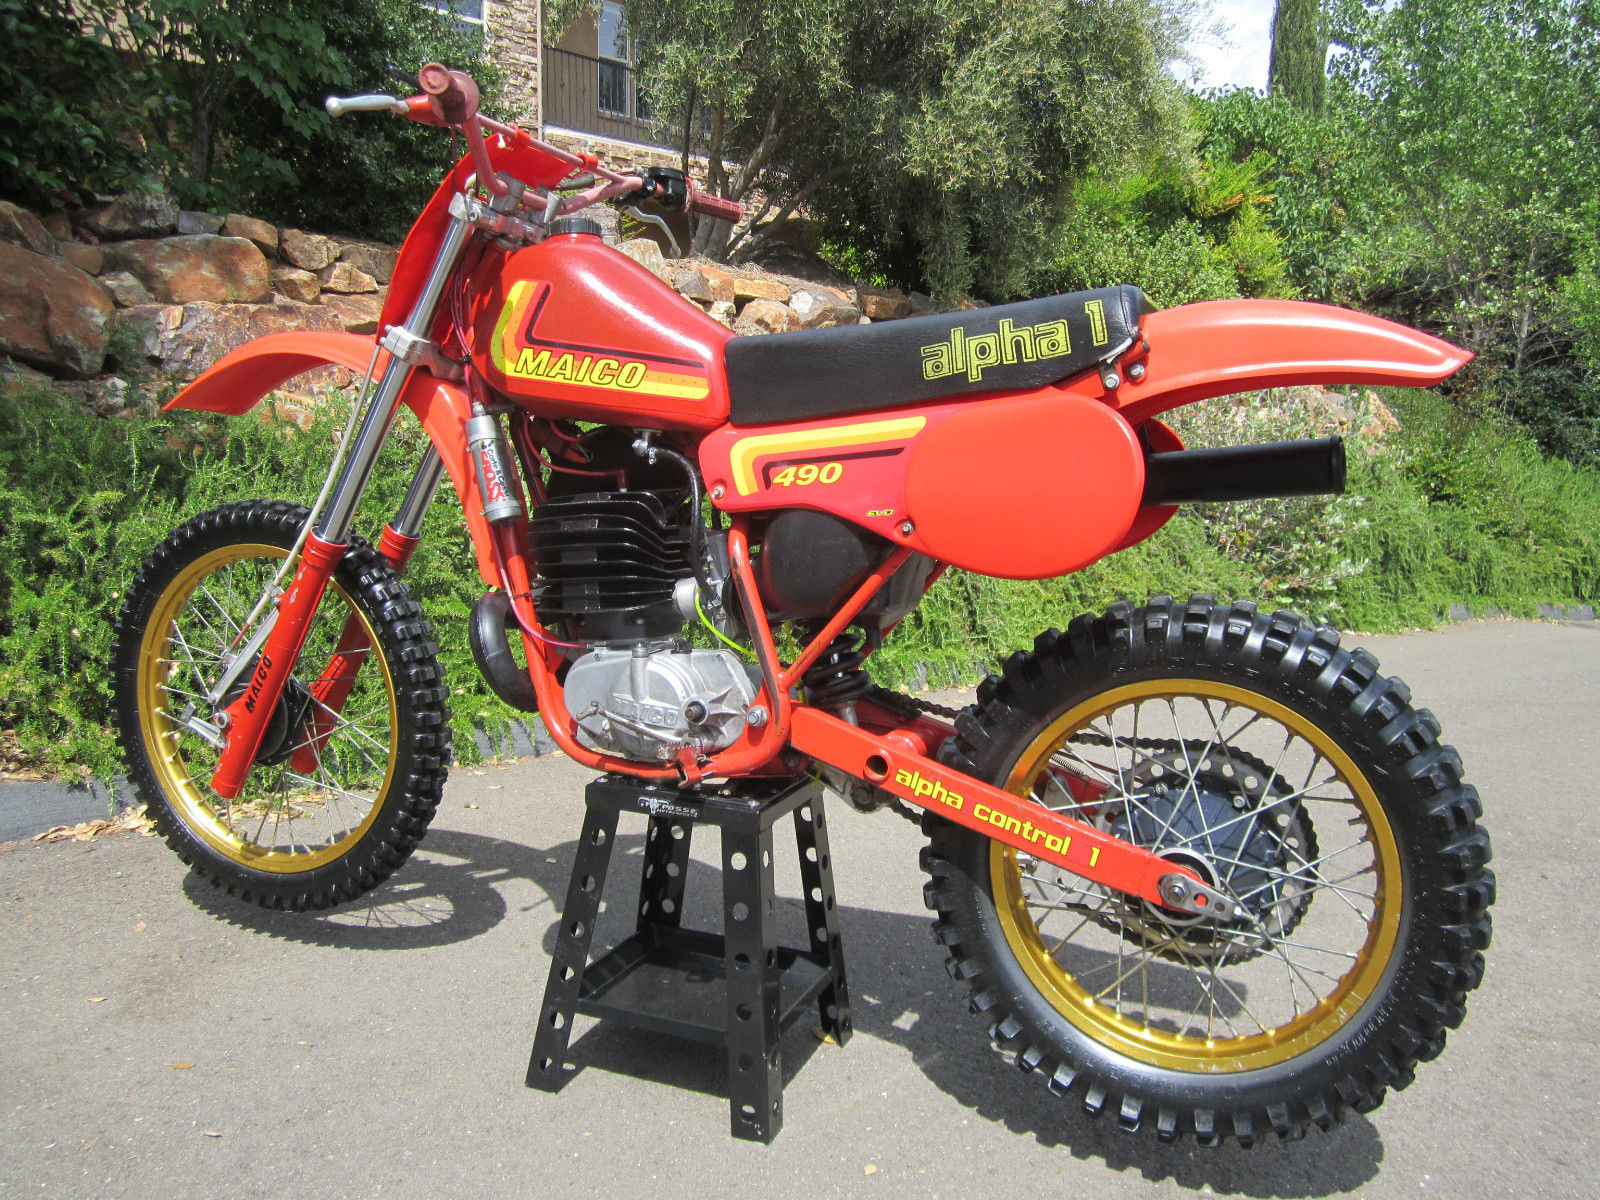 Maico 490 Alpha-1 - 1982 - Restored Classic Motorcycles at